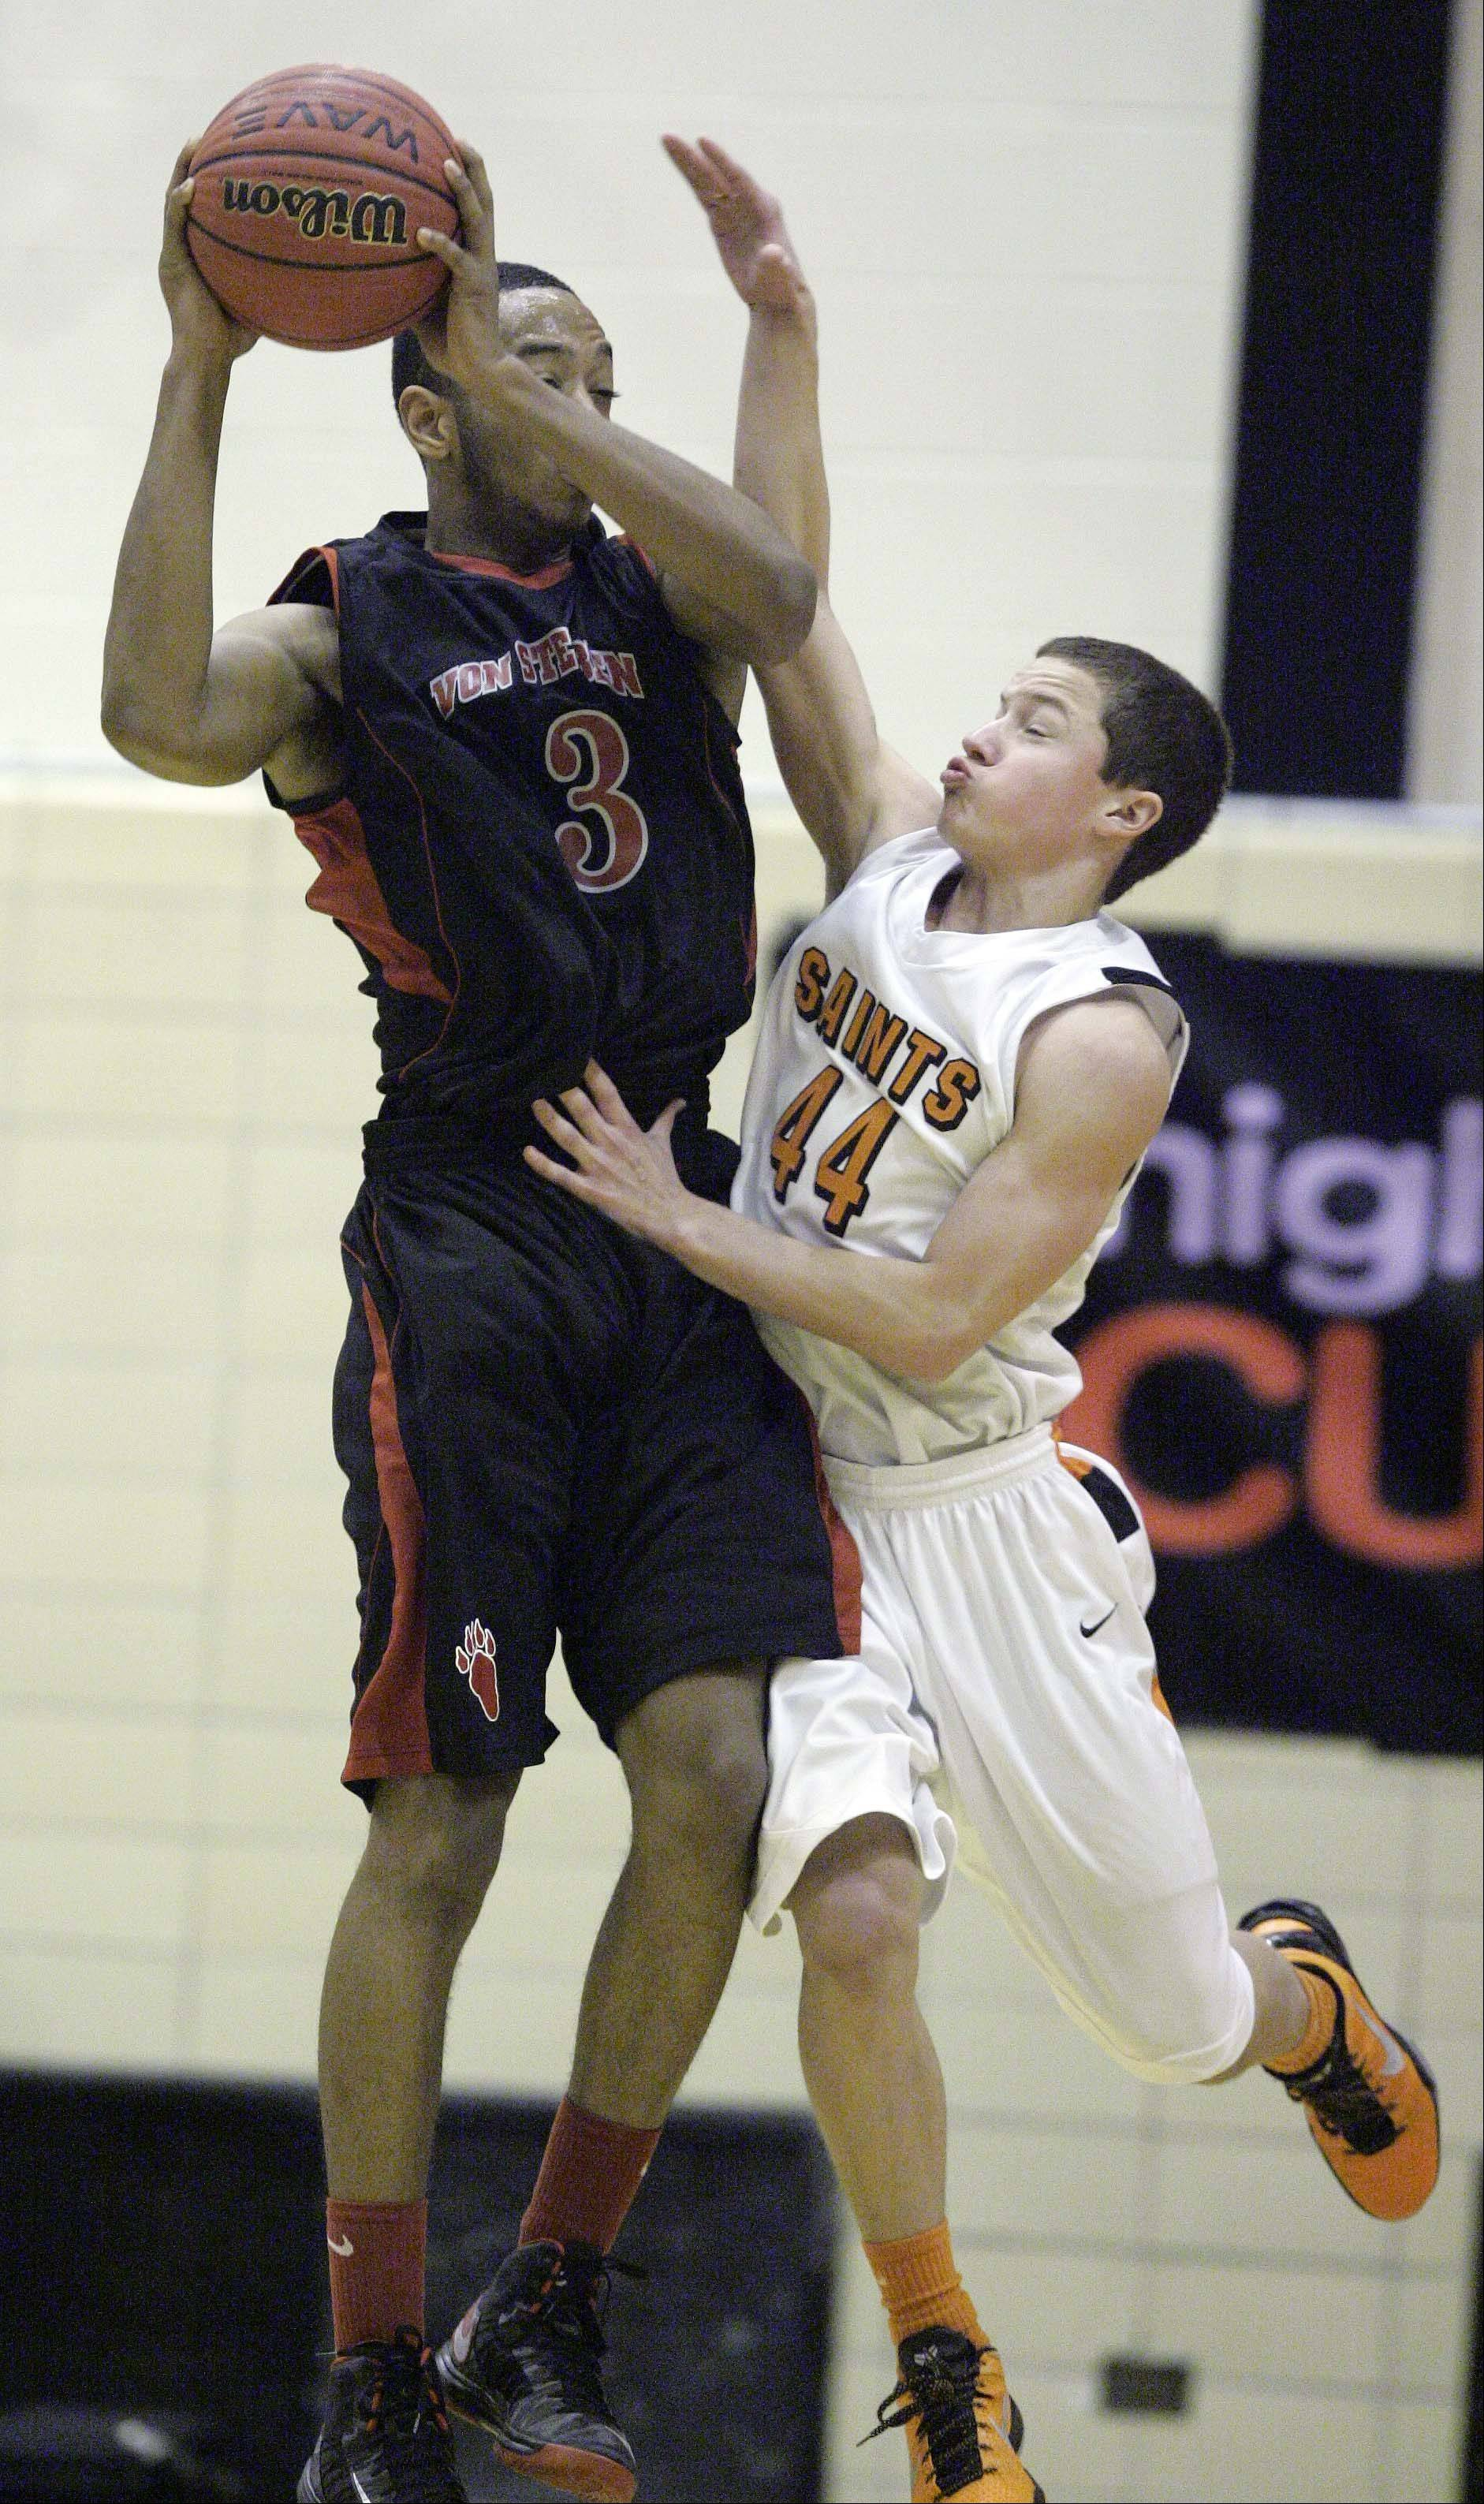 St. Charles East's Cole Gentry, 44, puts the pressure on Von Steuben's Joeseph Rencher, 3, at the Proviso West Holiday Tournament in Hillside, Wednesday December 26, 2012.